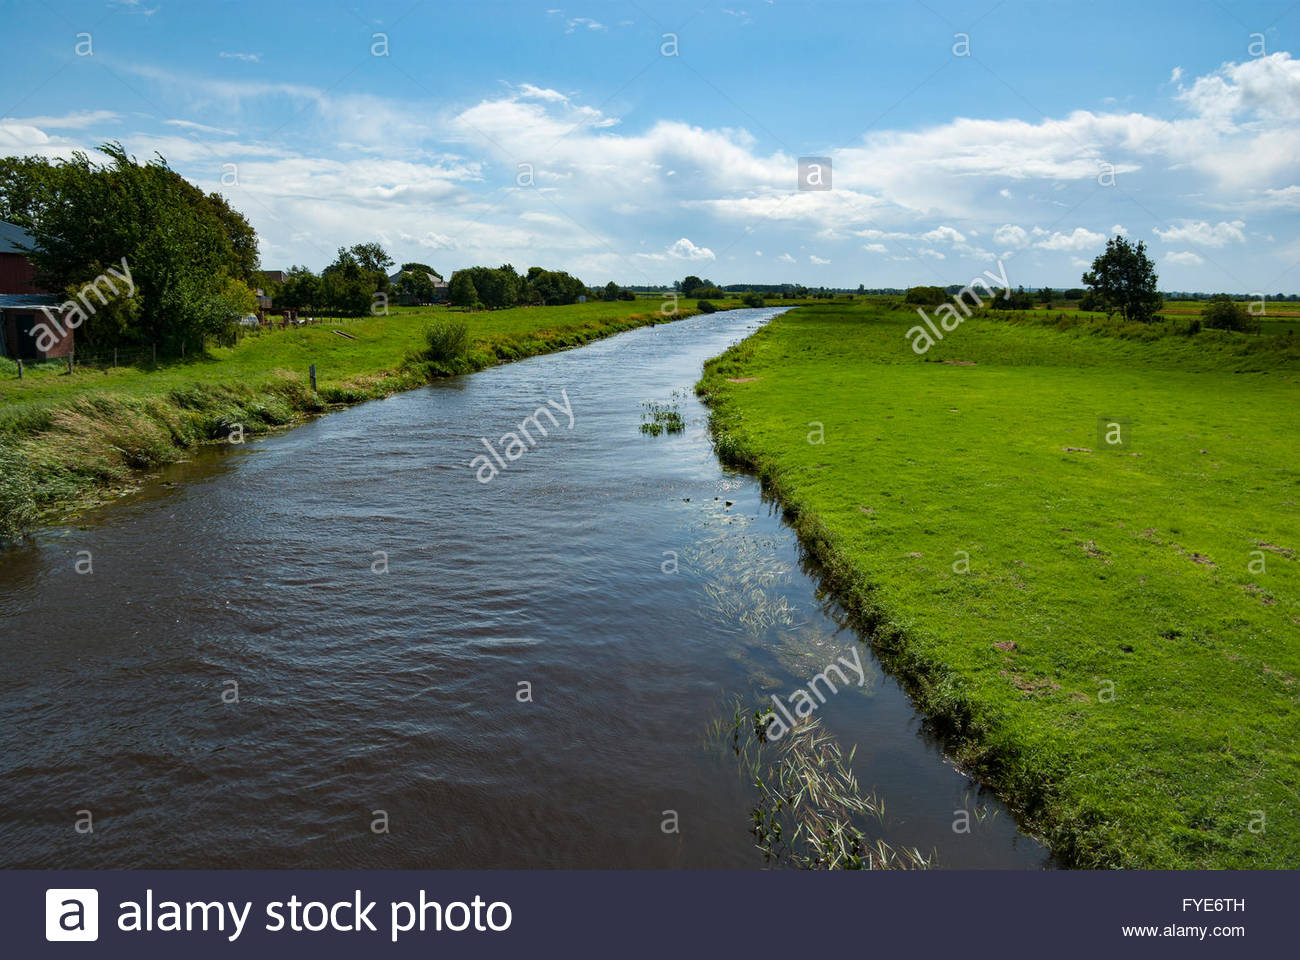 The Treene River near Hollingstedt, Germany, which the Vikings used to travel to the North Sea from Haithabu. - Stock Image